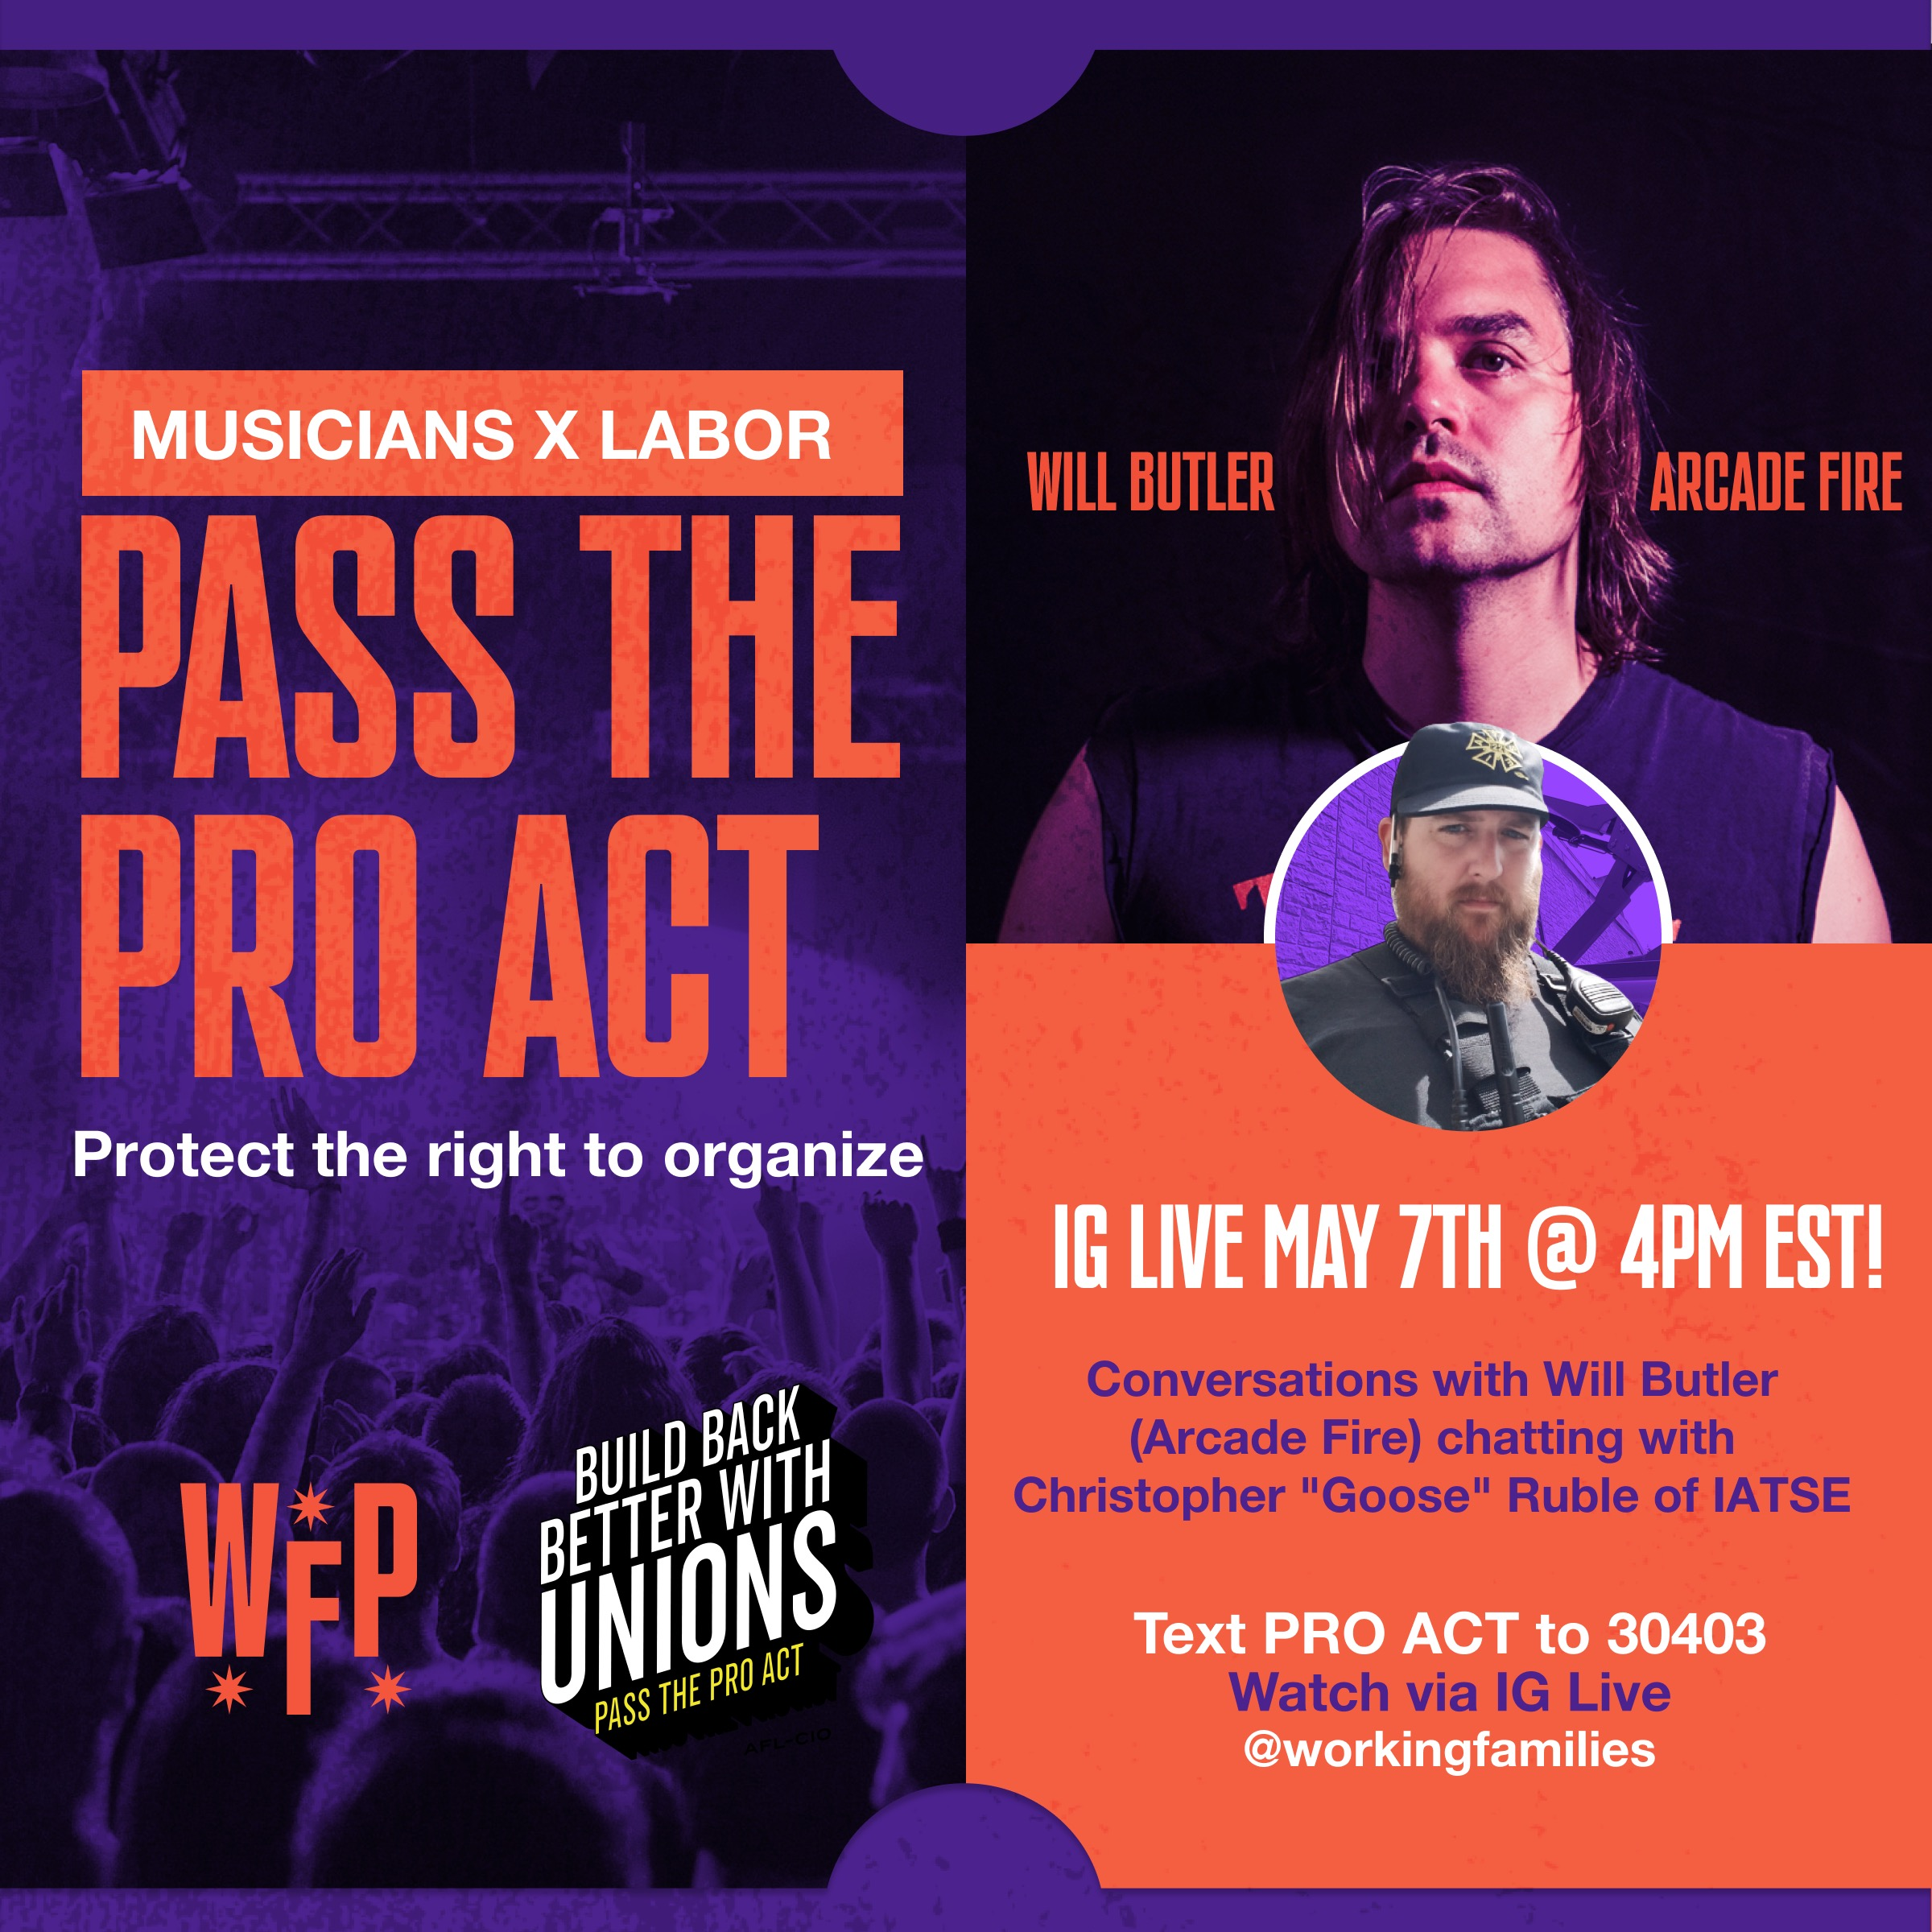 Tomorrow: Join us for the next in our series of live conversations on the #PROAct and the right to organize!